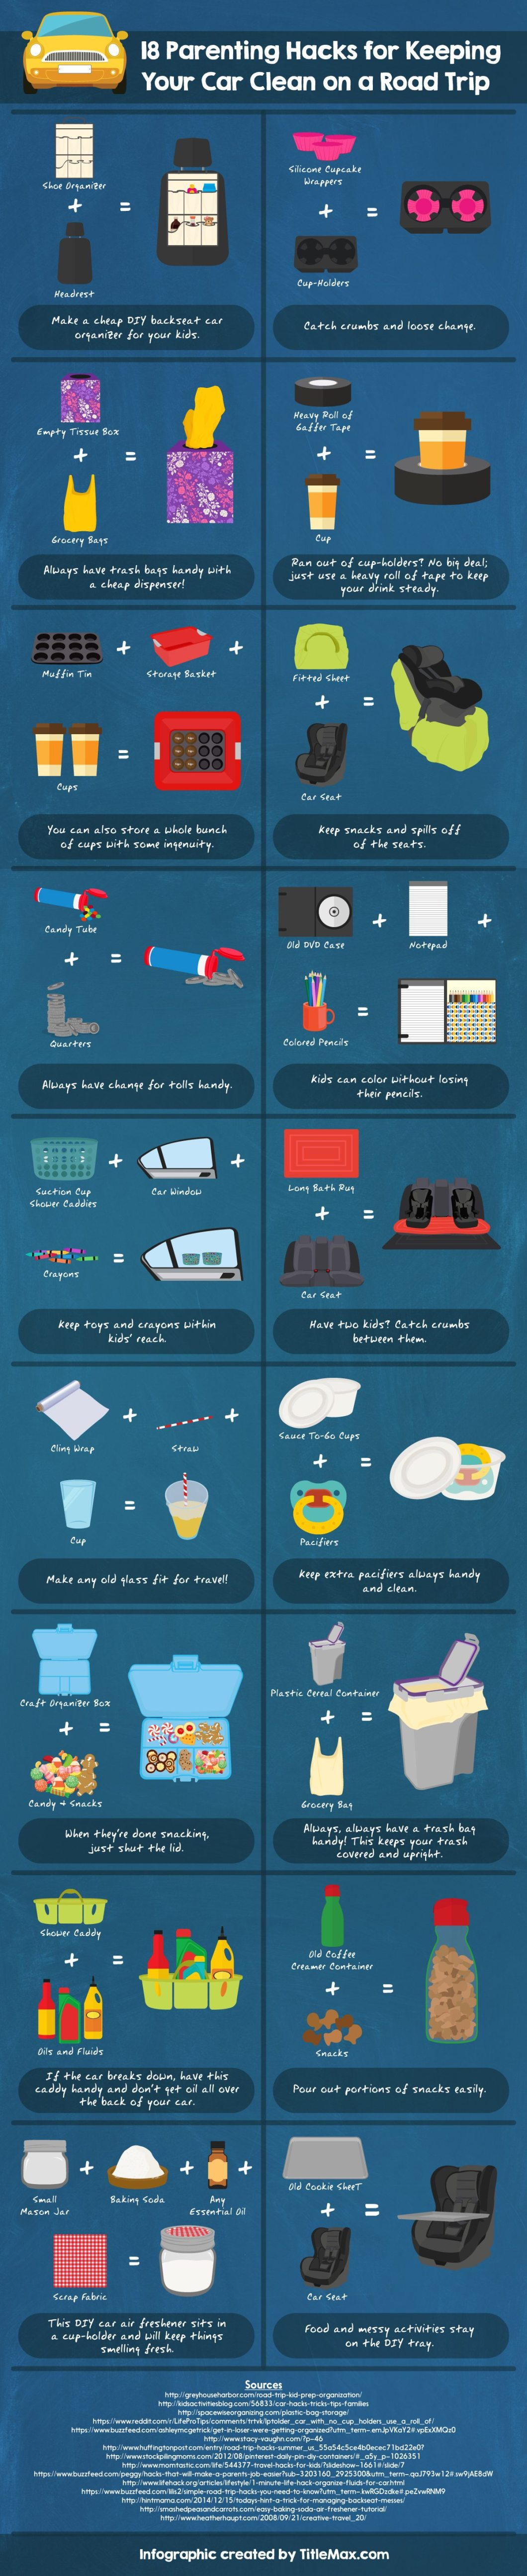 Keeping Your Car Clean on Road Trips: Tips and Tricks - Infographic